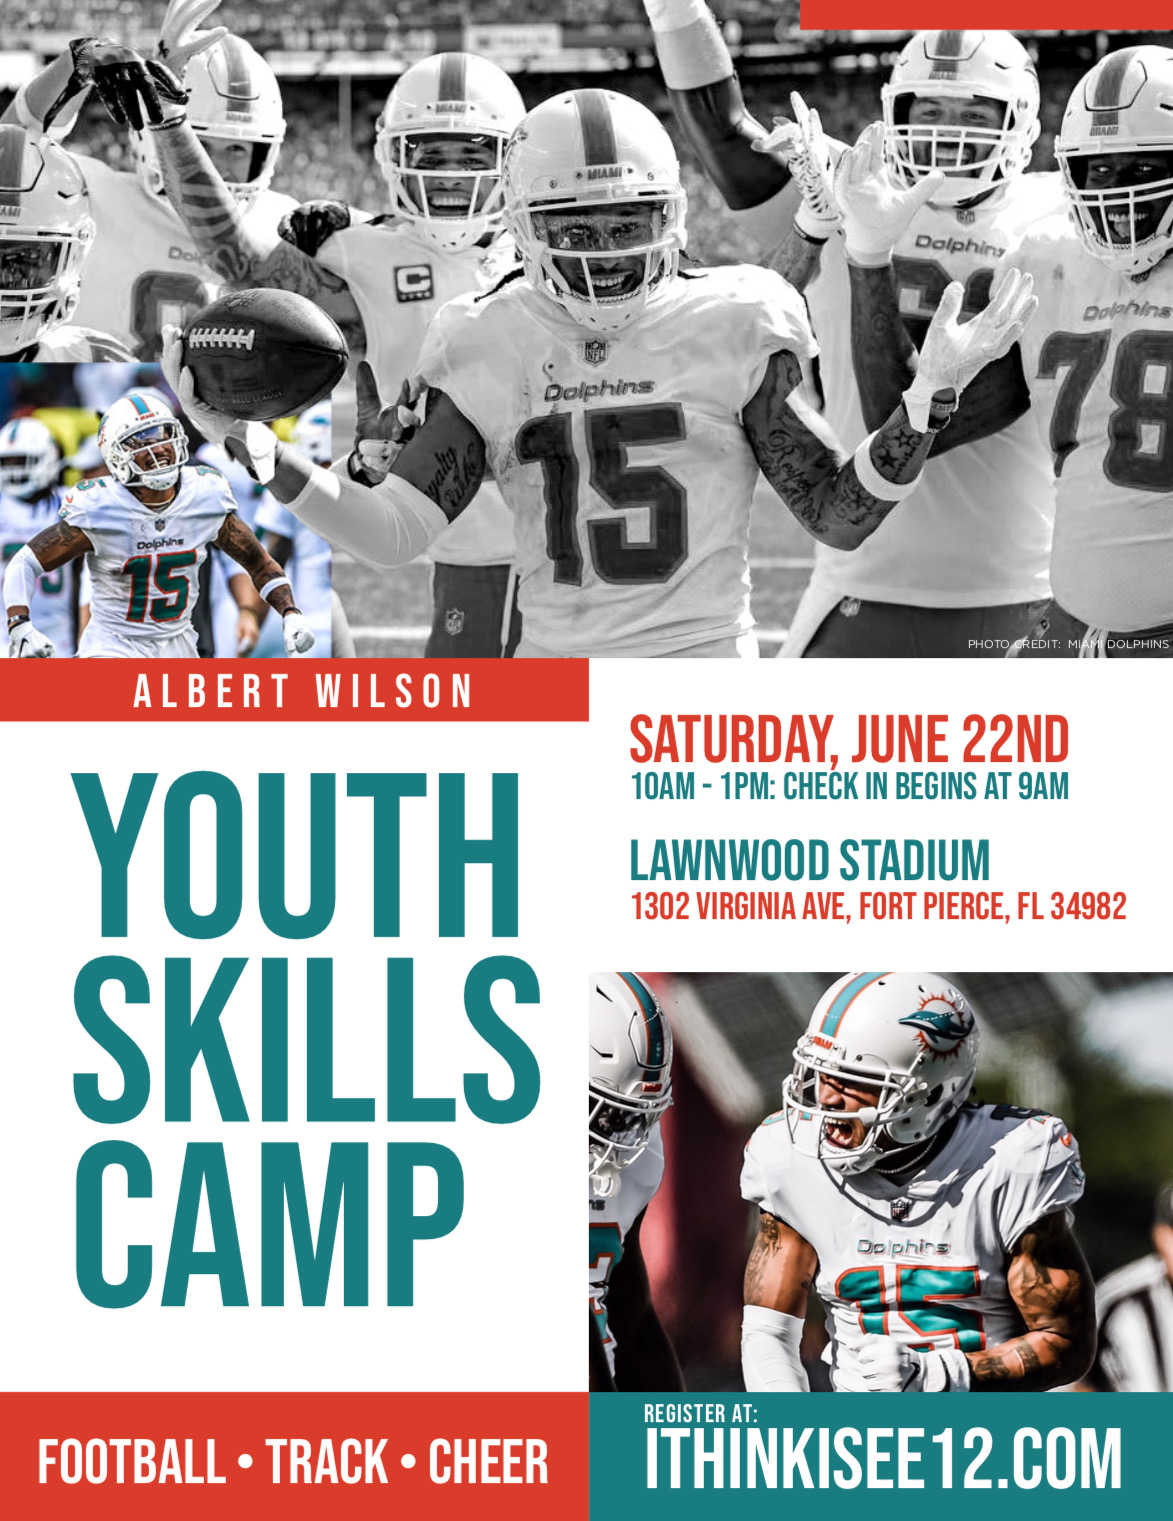 YOUTH SKILLS CAMP